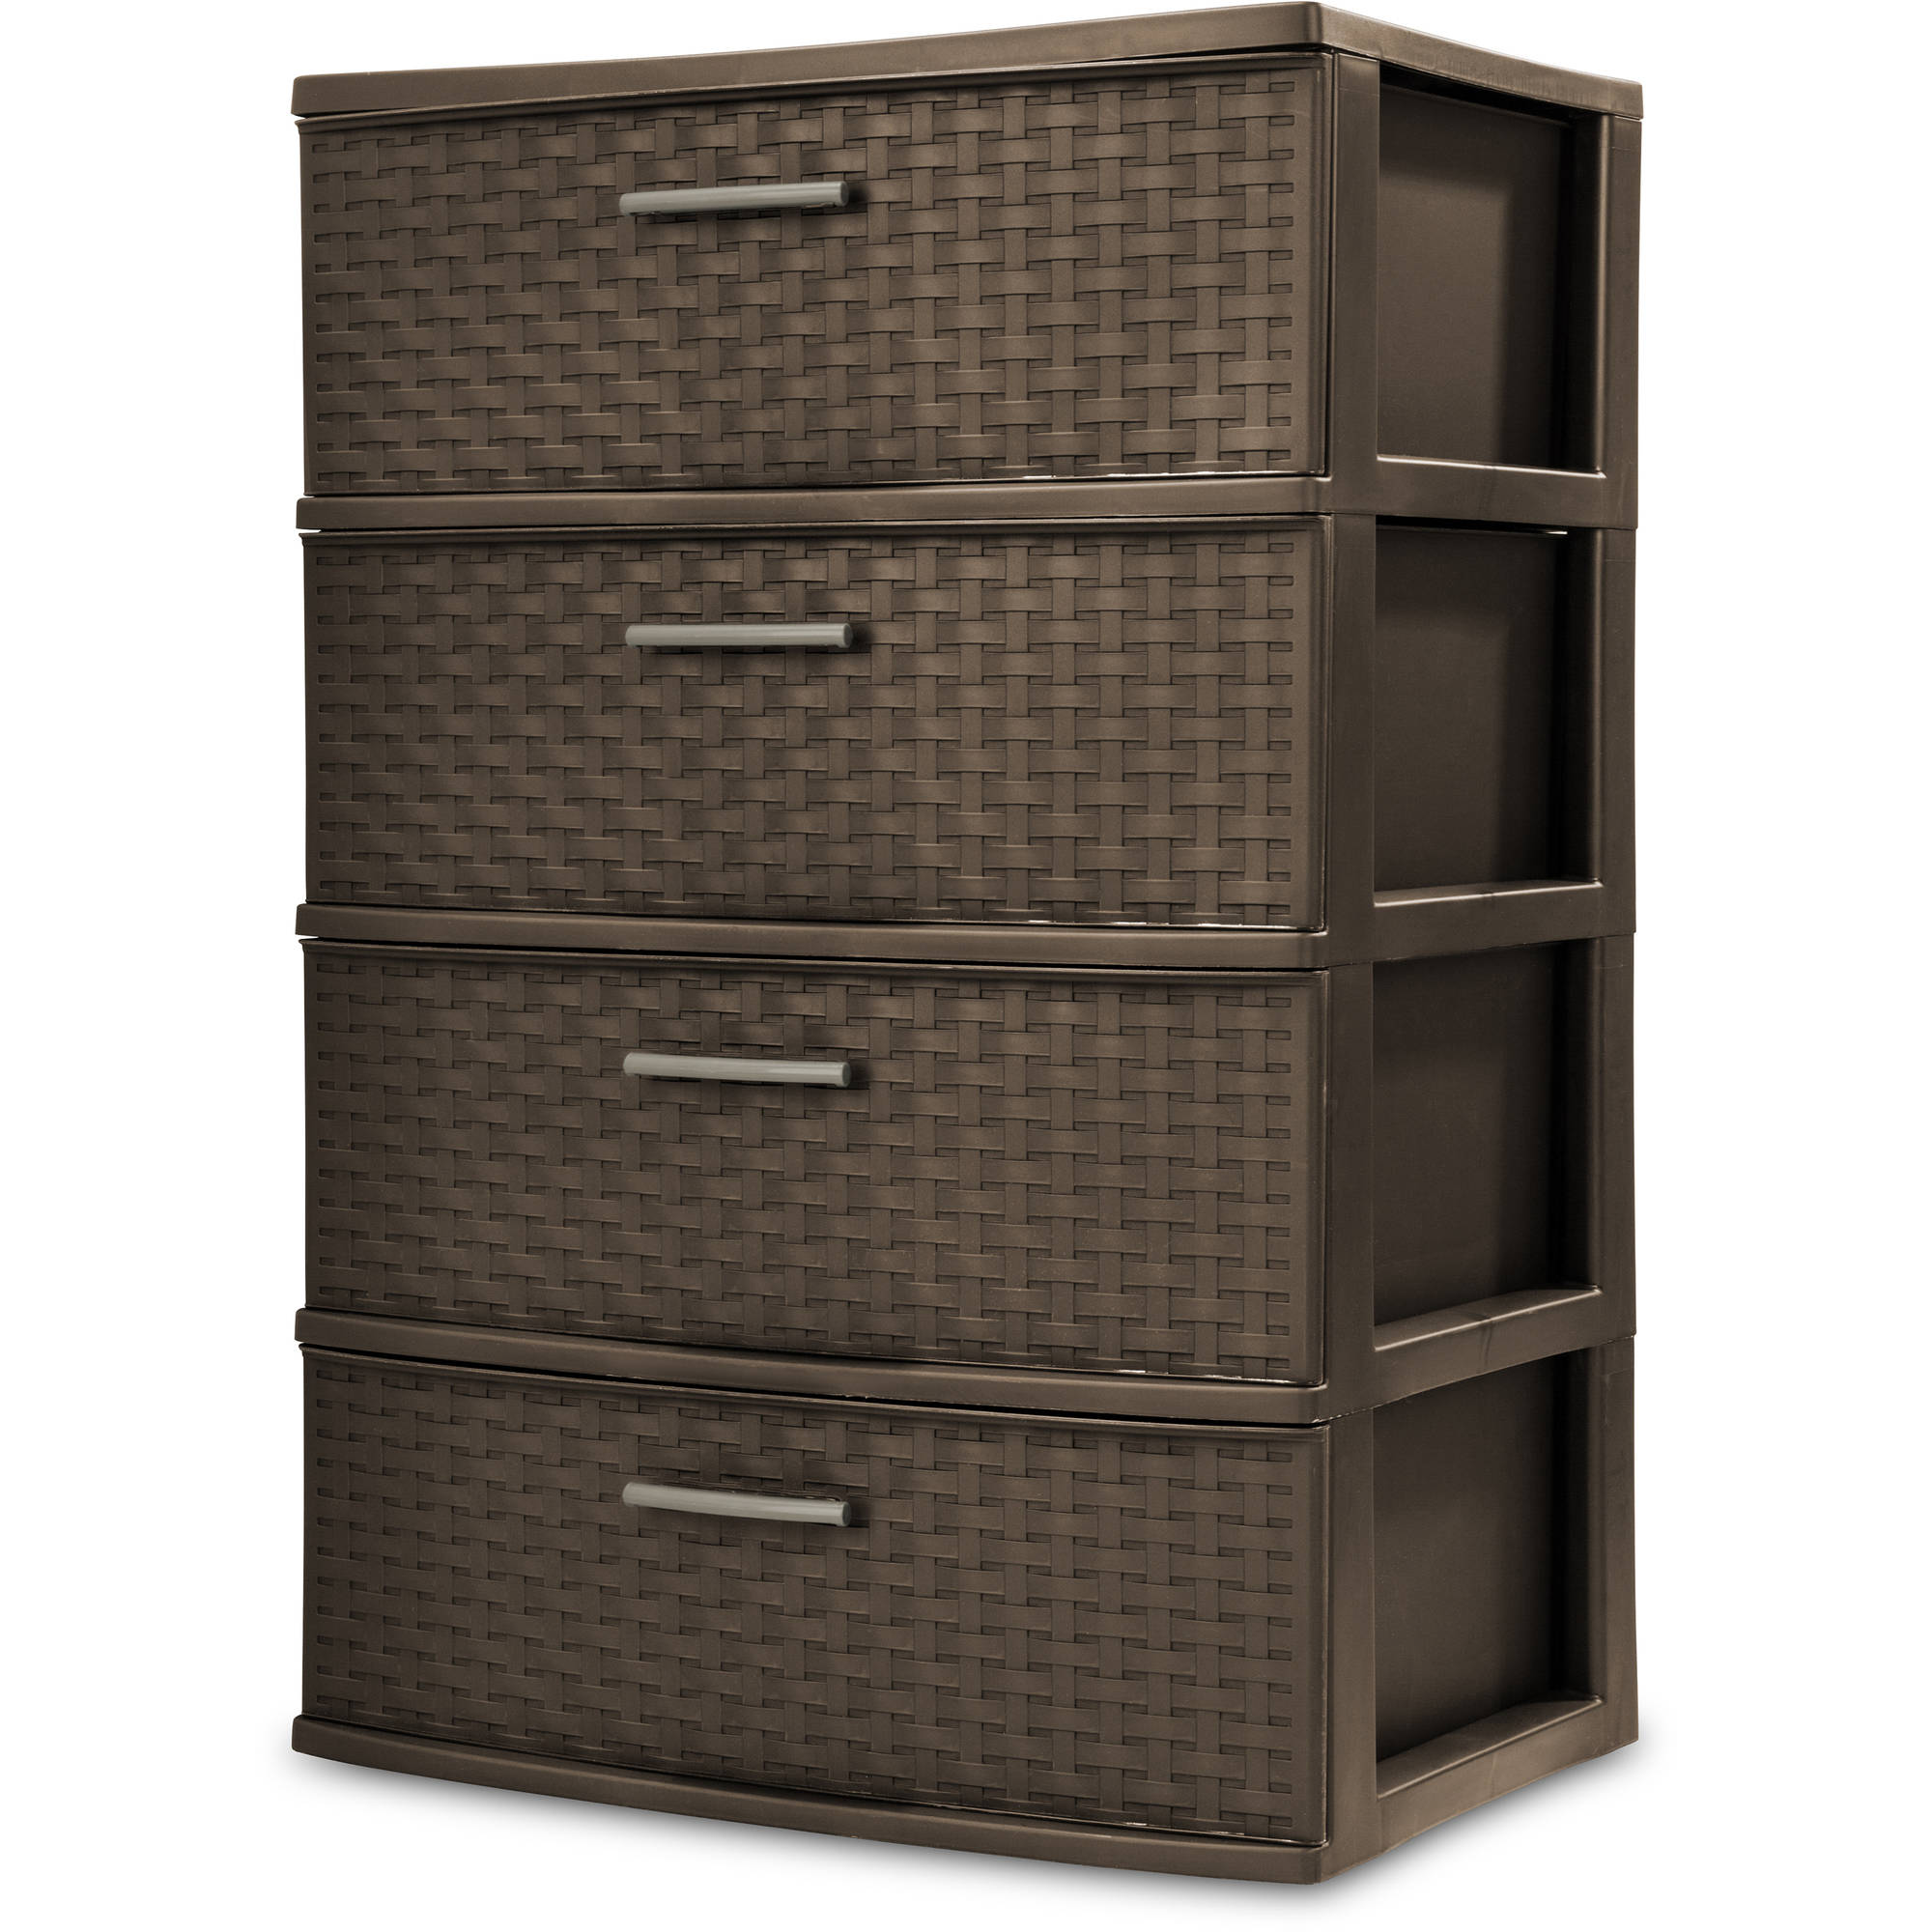 plastic drawer organizer sterilite 4 drawer wide weave tower espresso walmart 28910